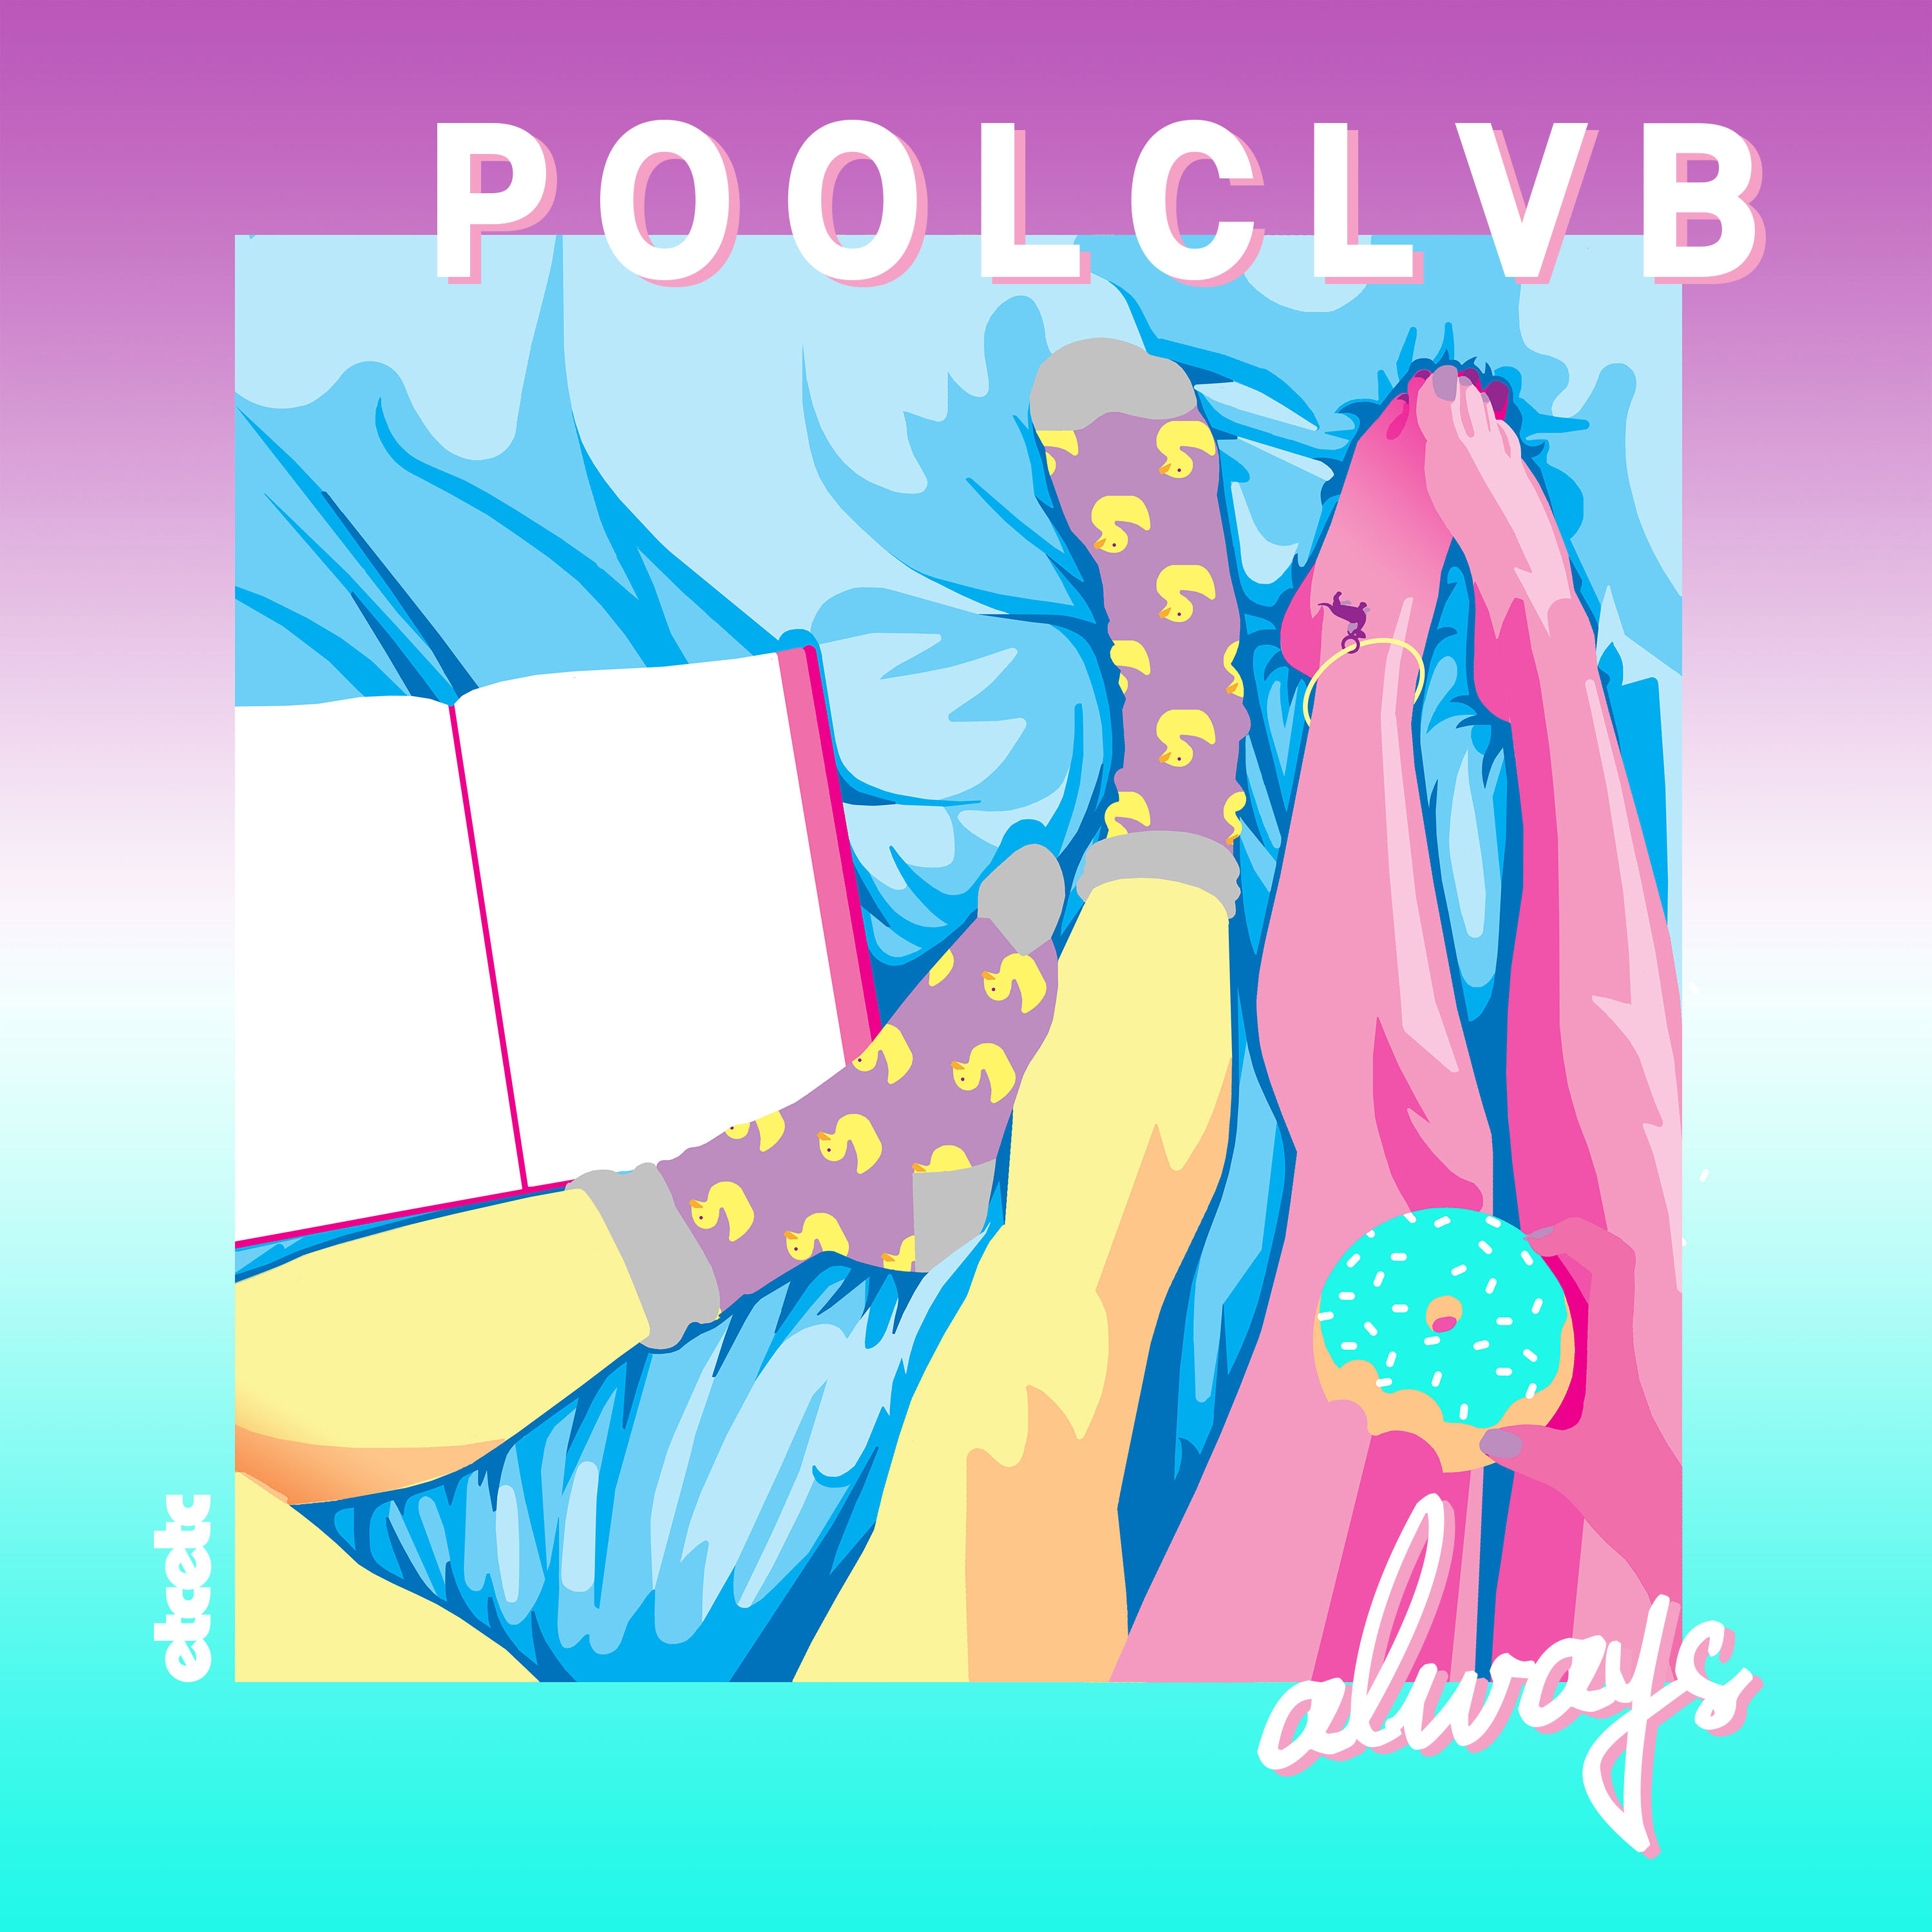 poolclvb-always